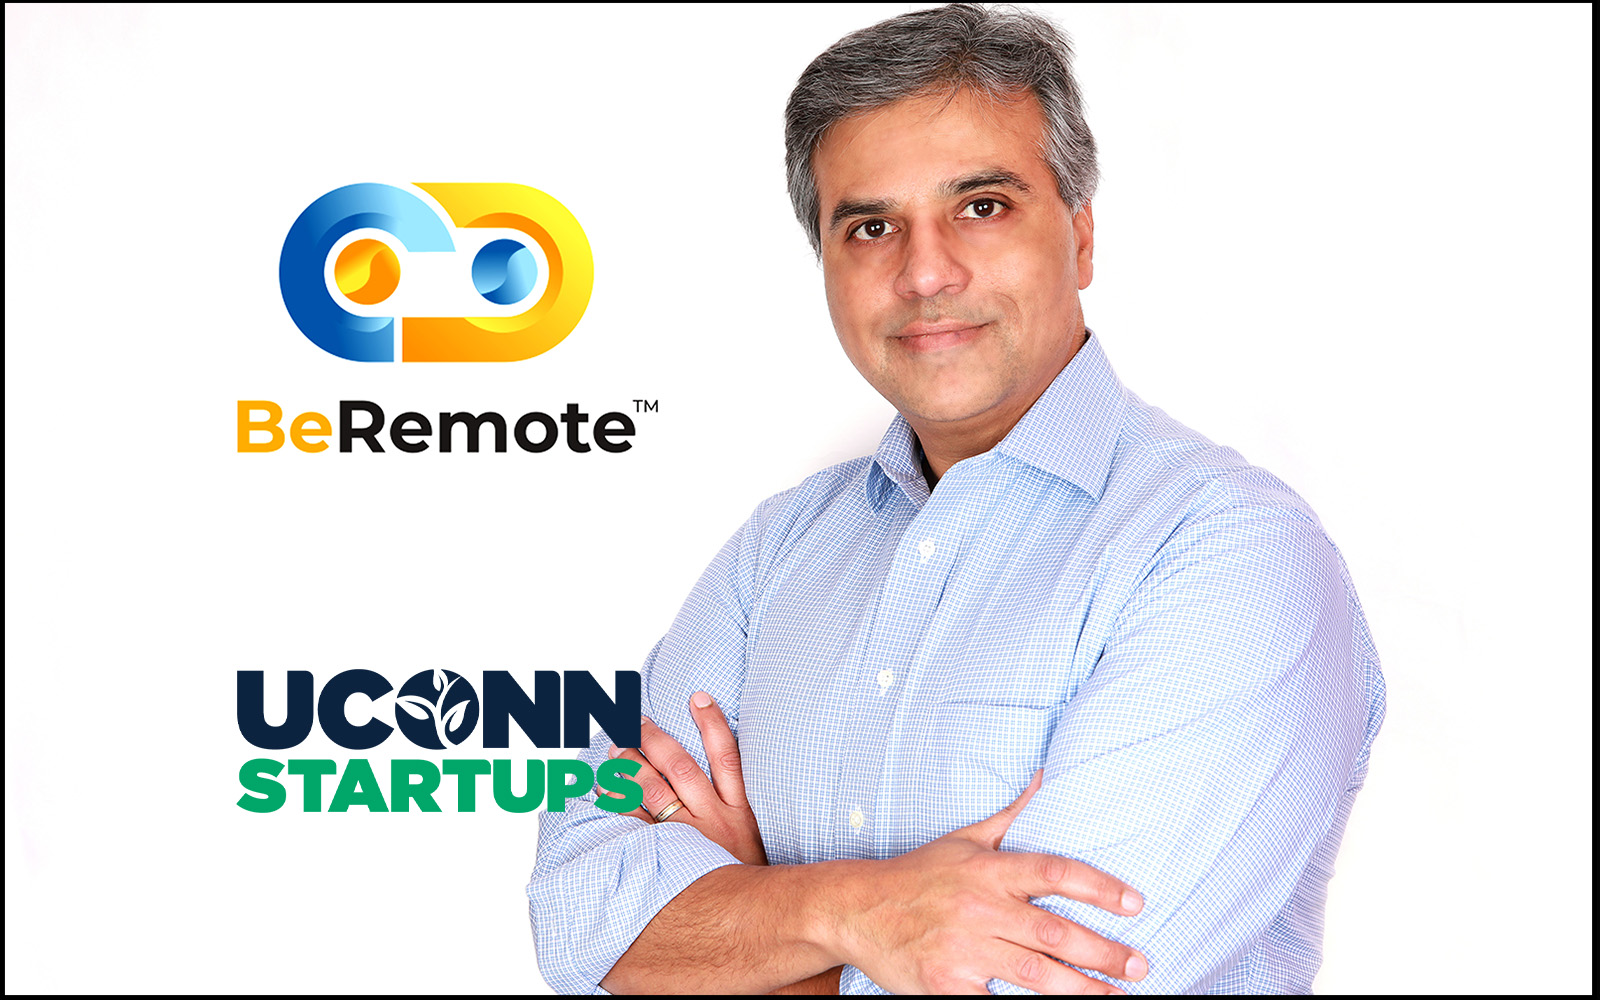 BeRemote CEO Vivek Nigam